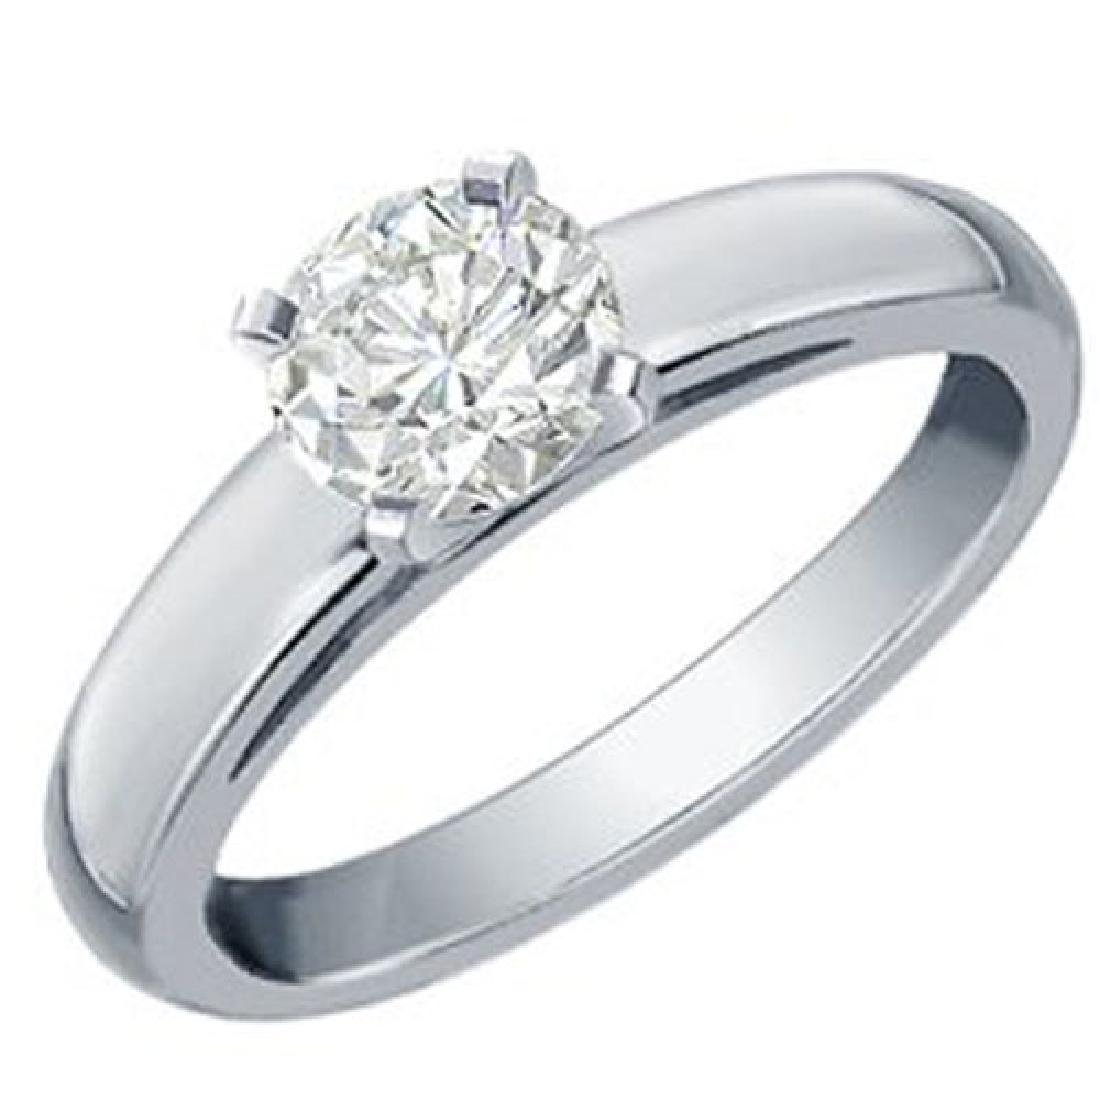 1.50 CTW Certified VS/SI Diamond Solitaire Ring 14K